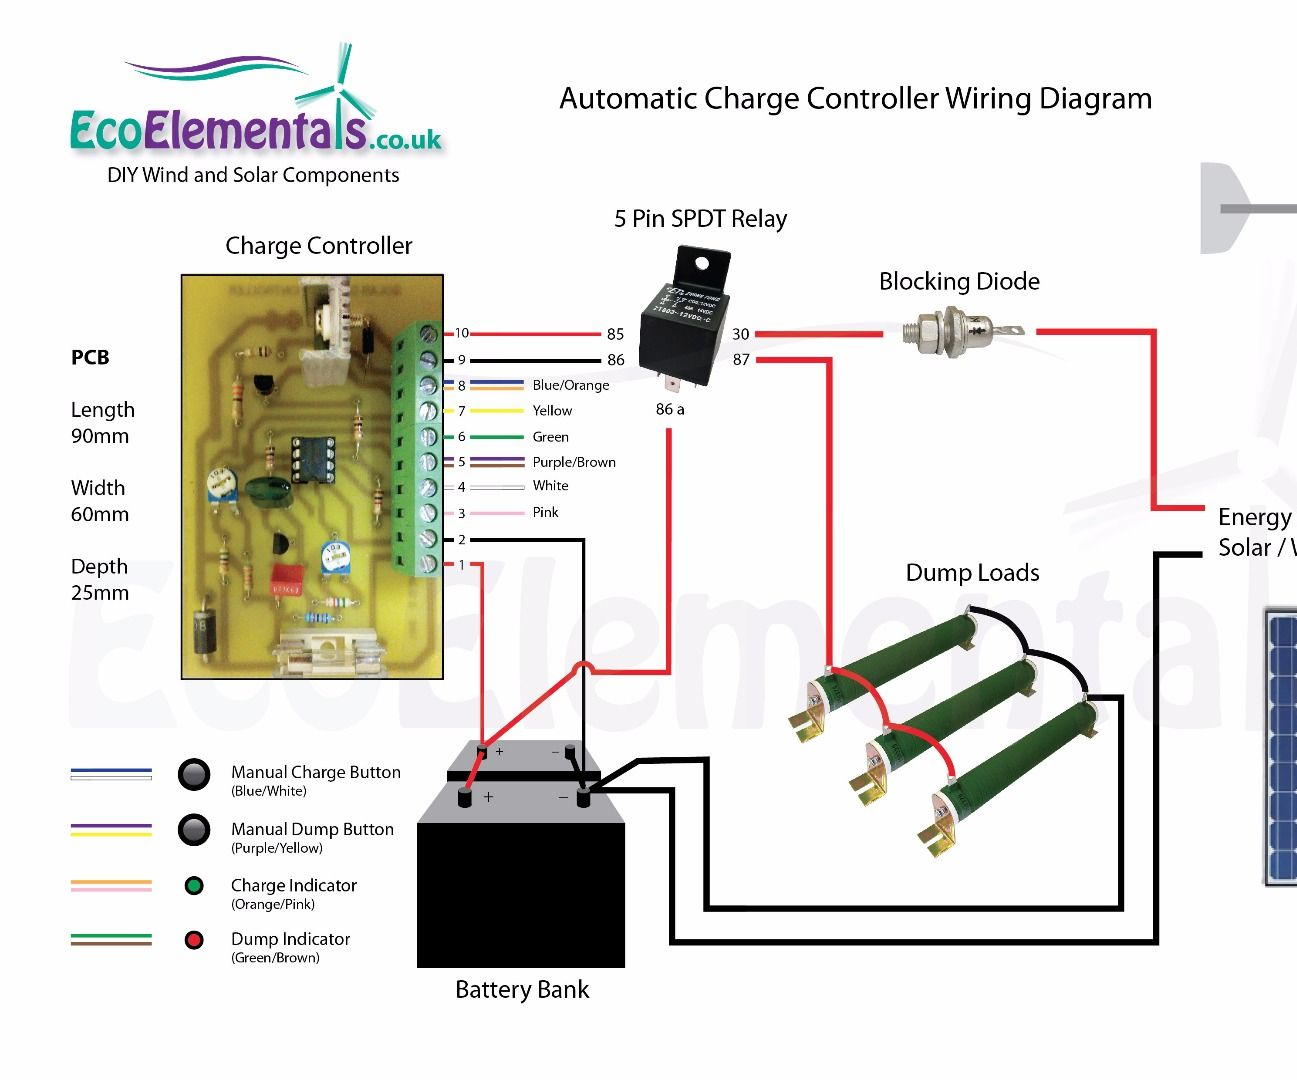 small resolution of charge controller wiring diagram for diy wind turbine or solar panels